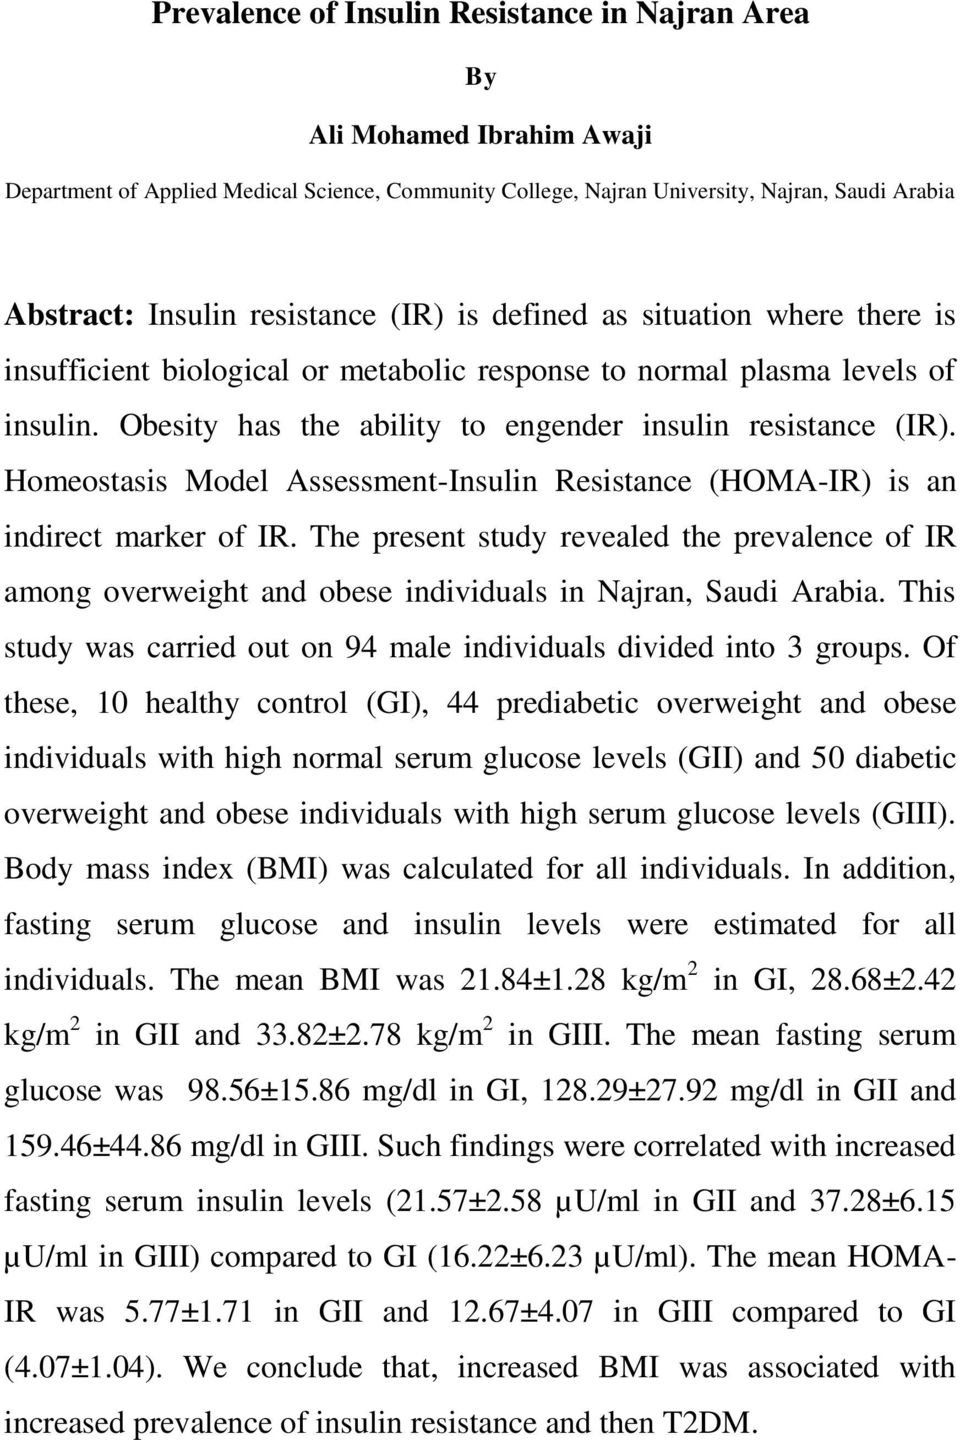 Homeostasis Model Assessment-Insulin Resistance (HOMA-IR) is an indirect marker of IR. The present study revealed the prevalence of IR among overweight and obese individuals in Najran, Saudi Arabia.